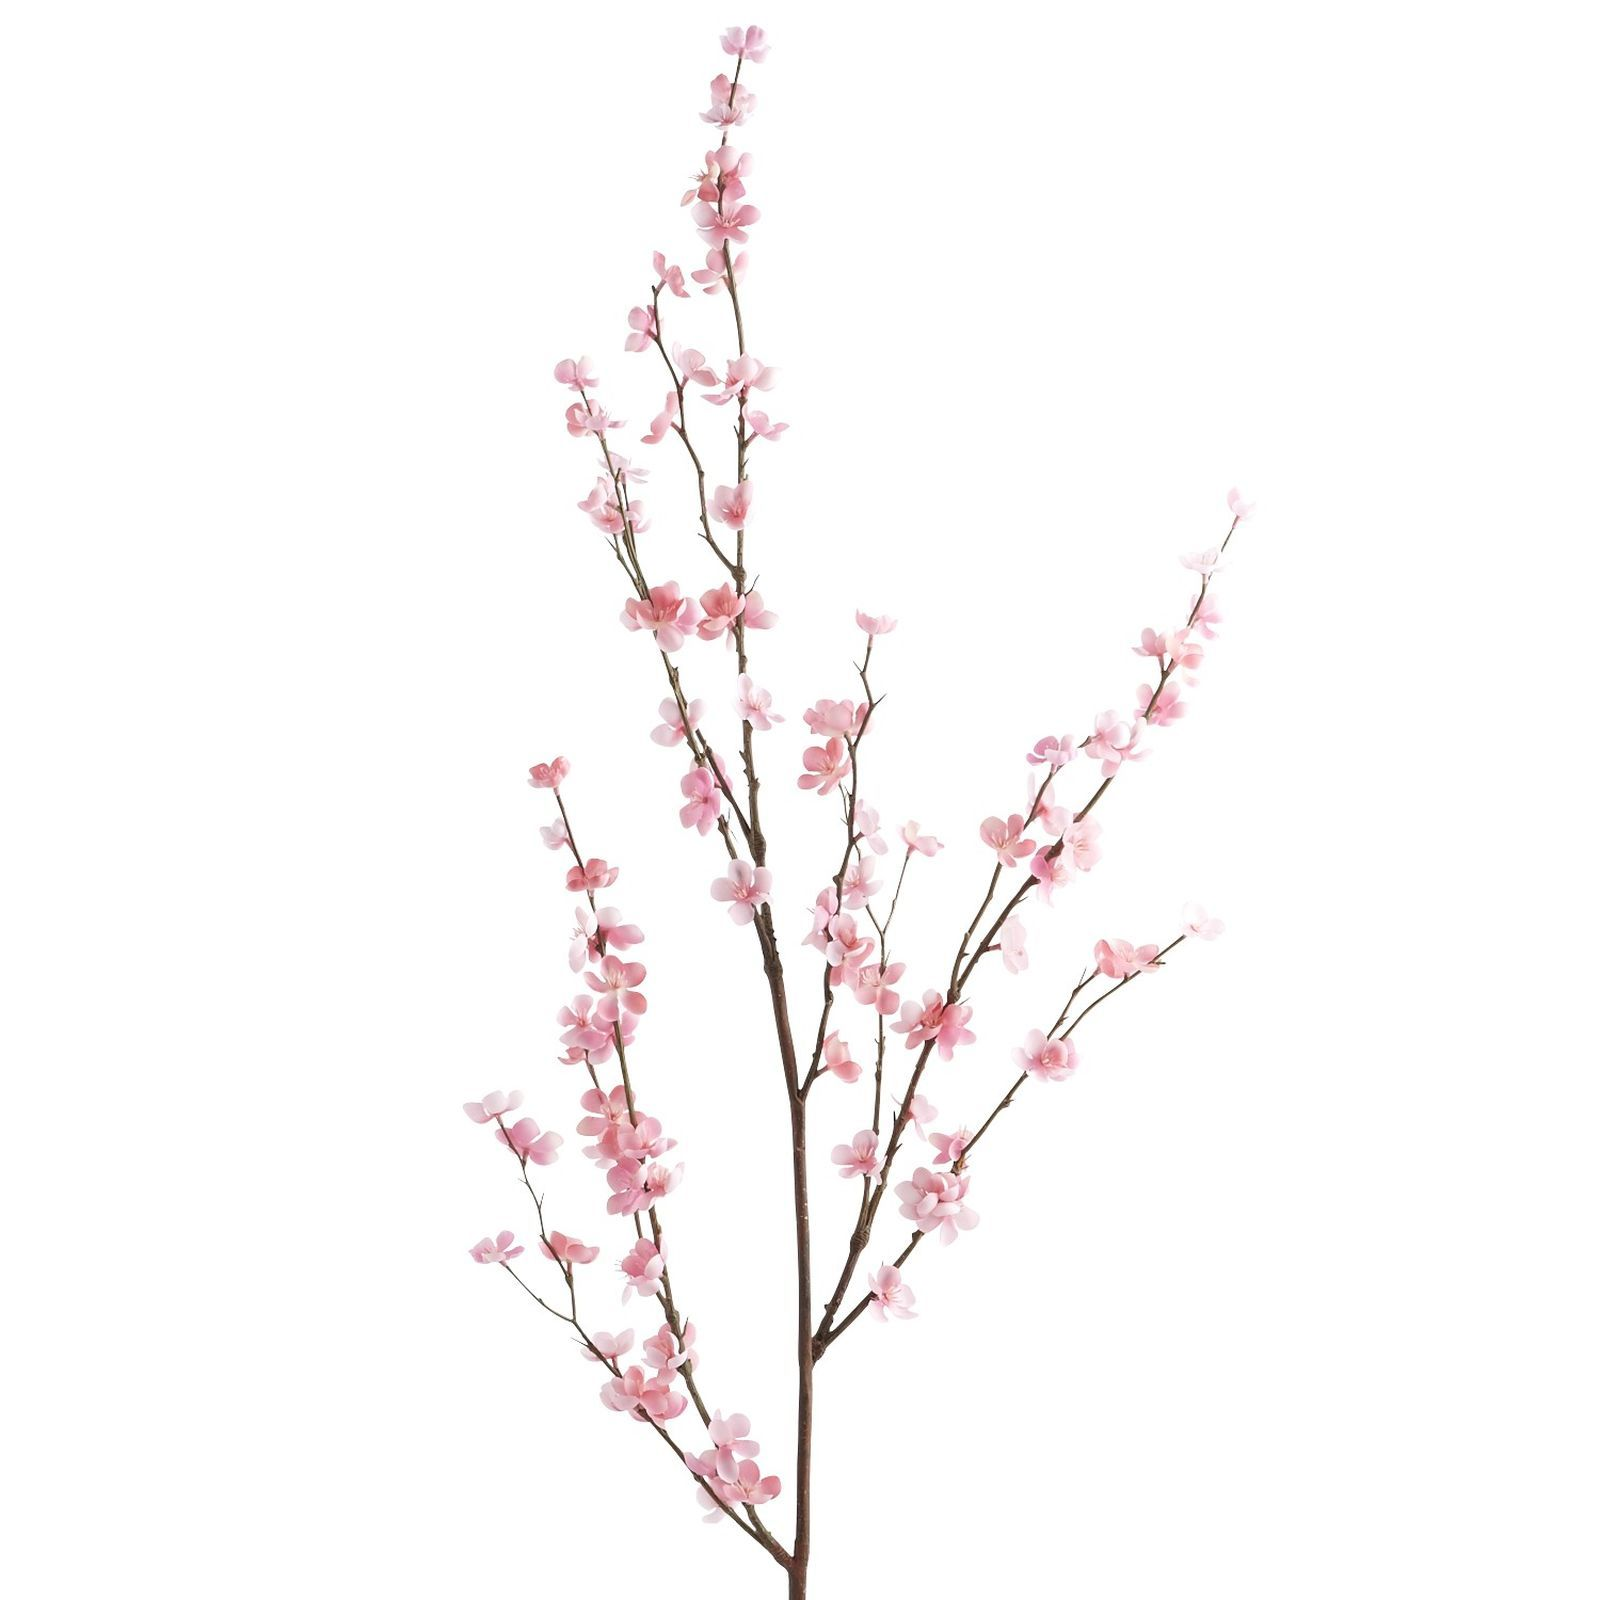 Faux Cherry Blossom Branch Pink Cherry Blossom Branch Cherry Blossom Blossom